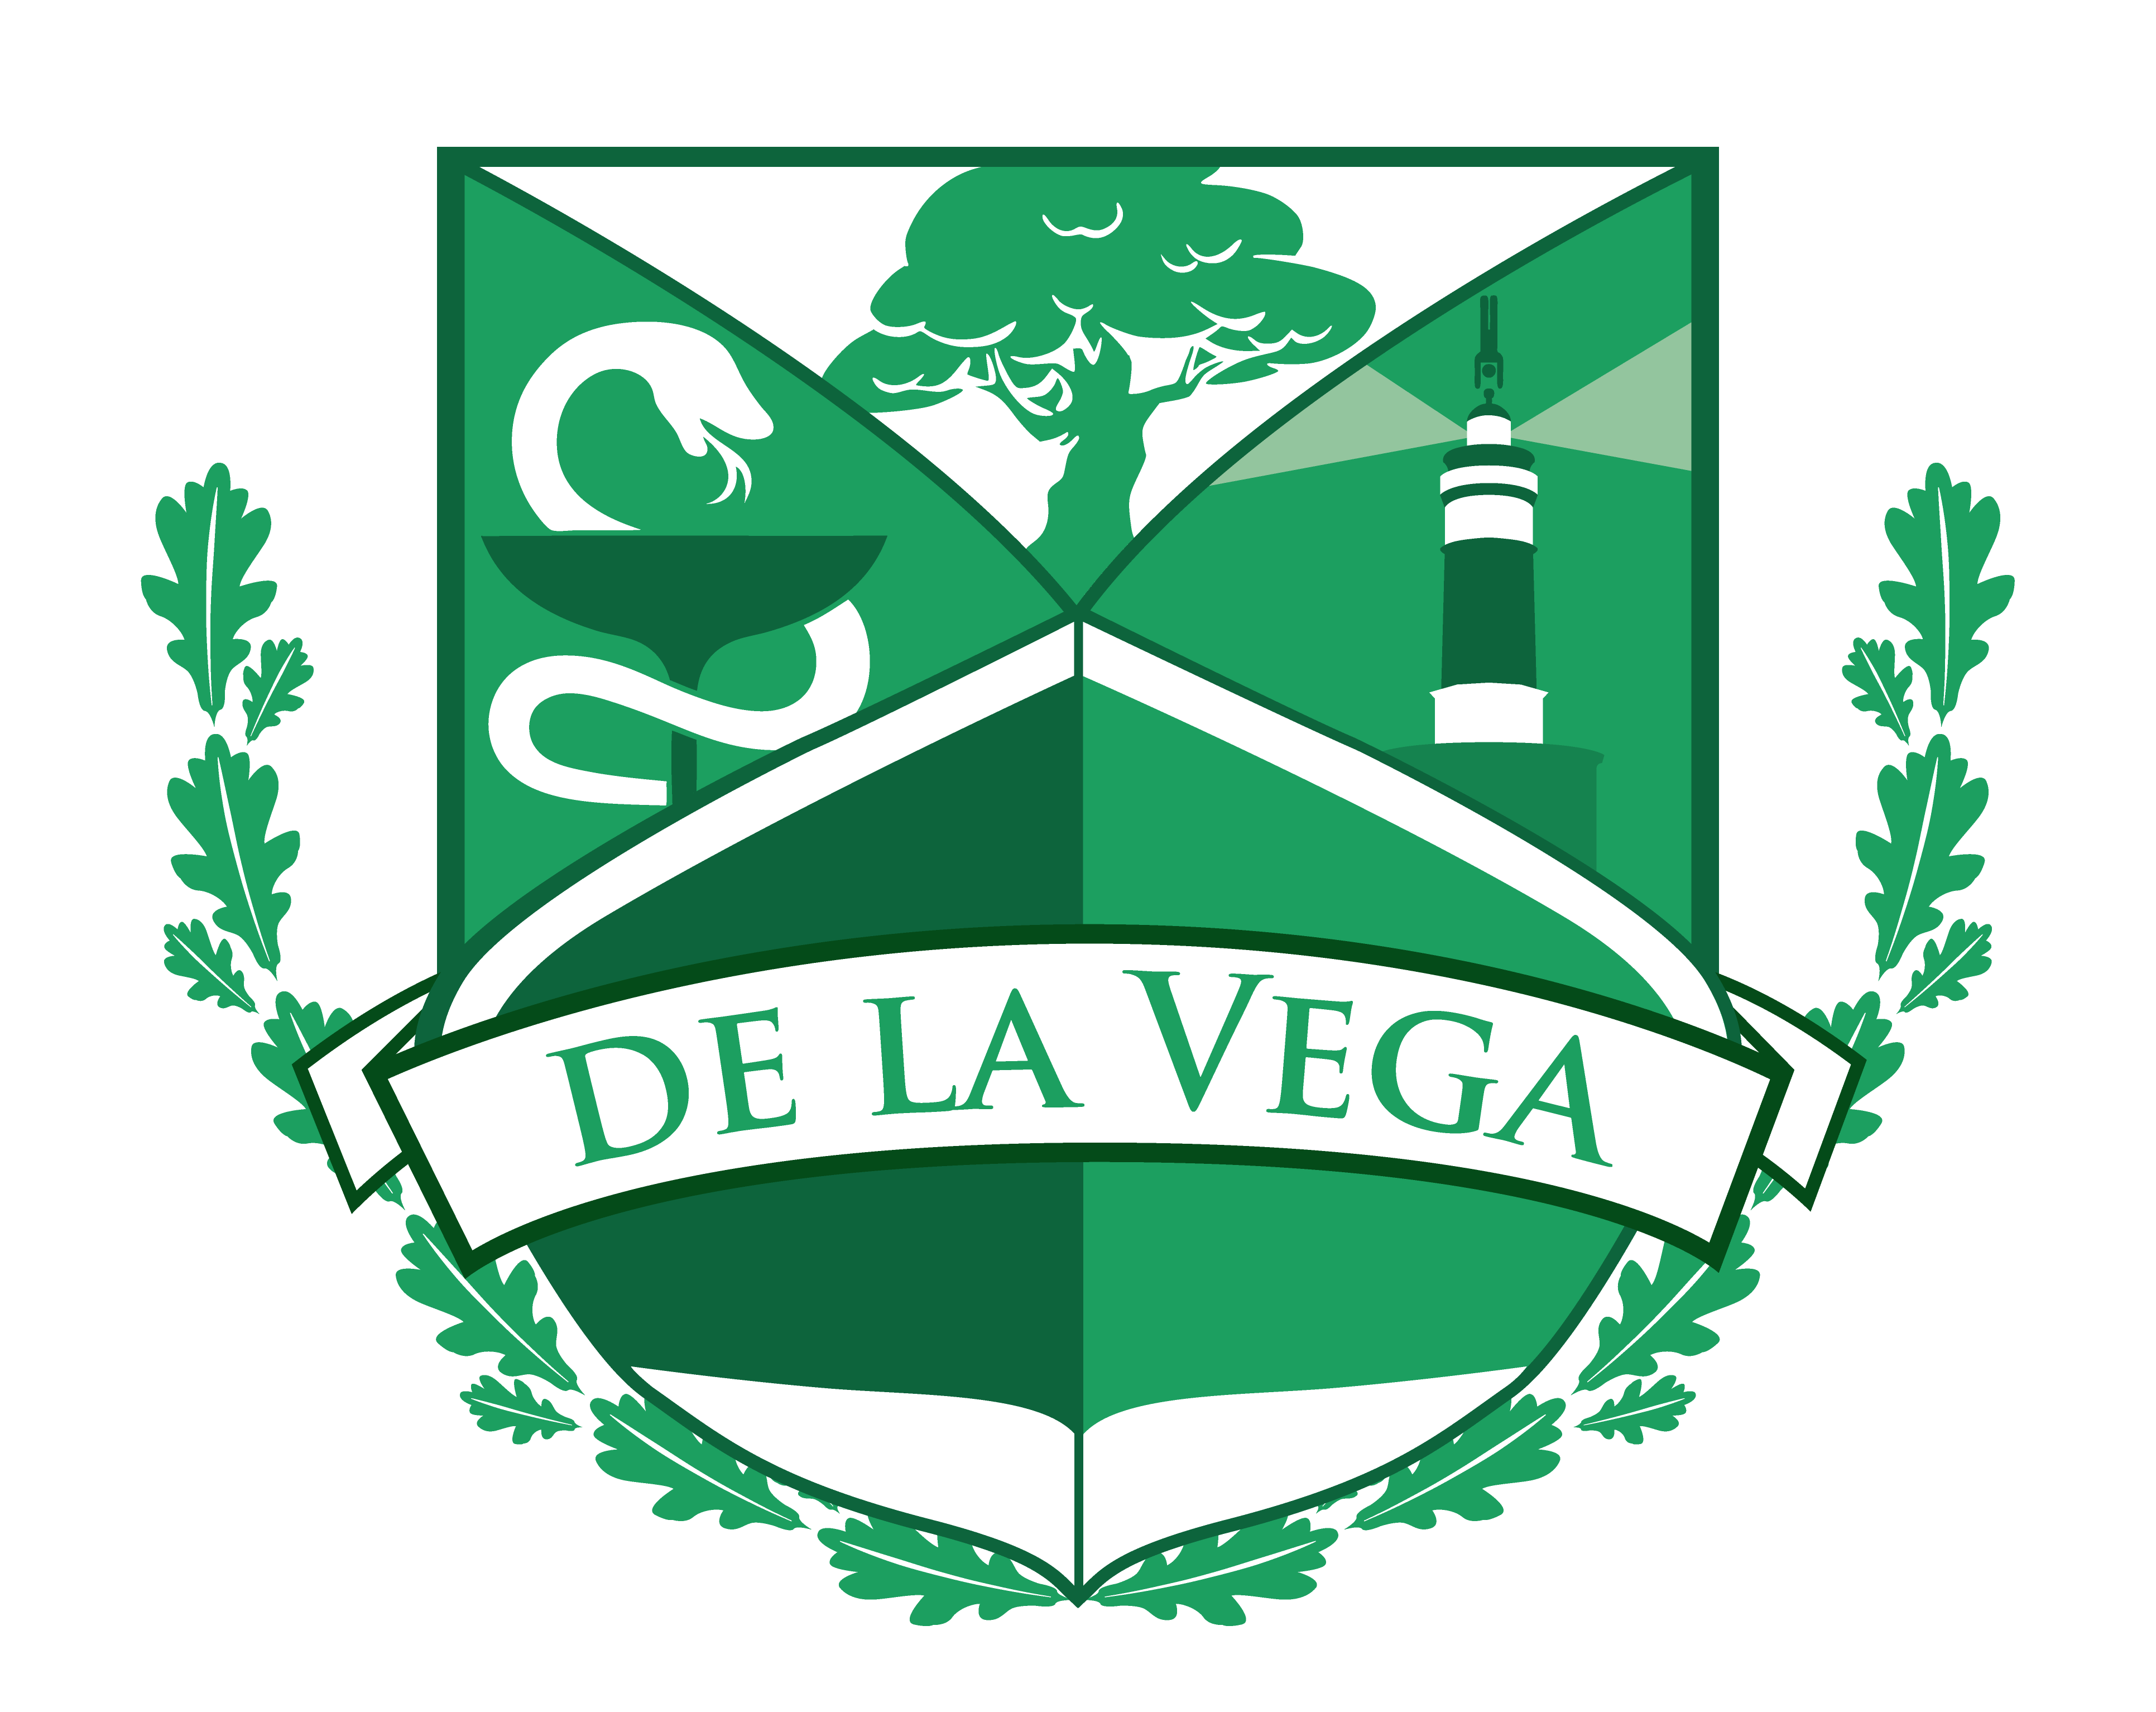 Family de la vega skillshare projects the shape was inspired by the actual heraldic emblem of my family the shield was modified and added a boat in honor of my grandfather who loved them buycottarizona Image collections